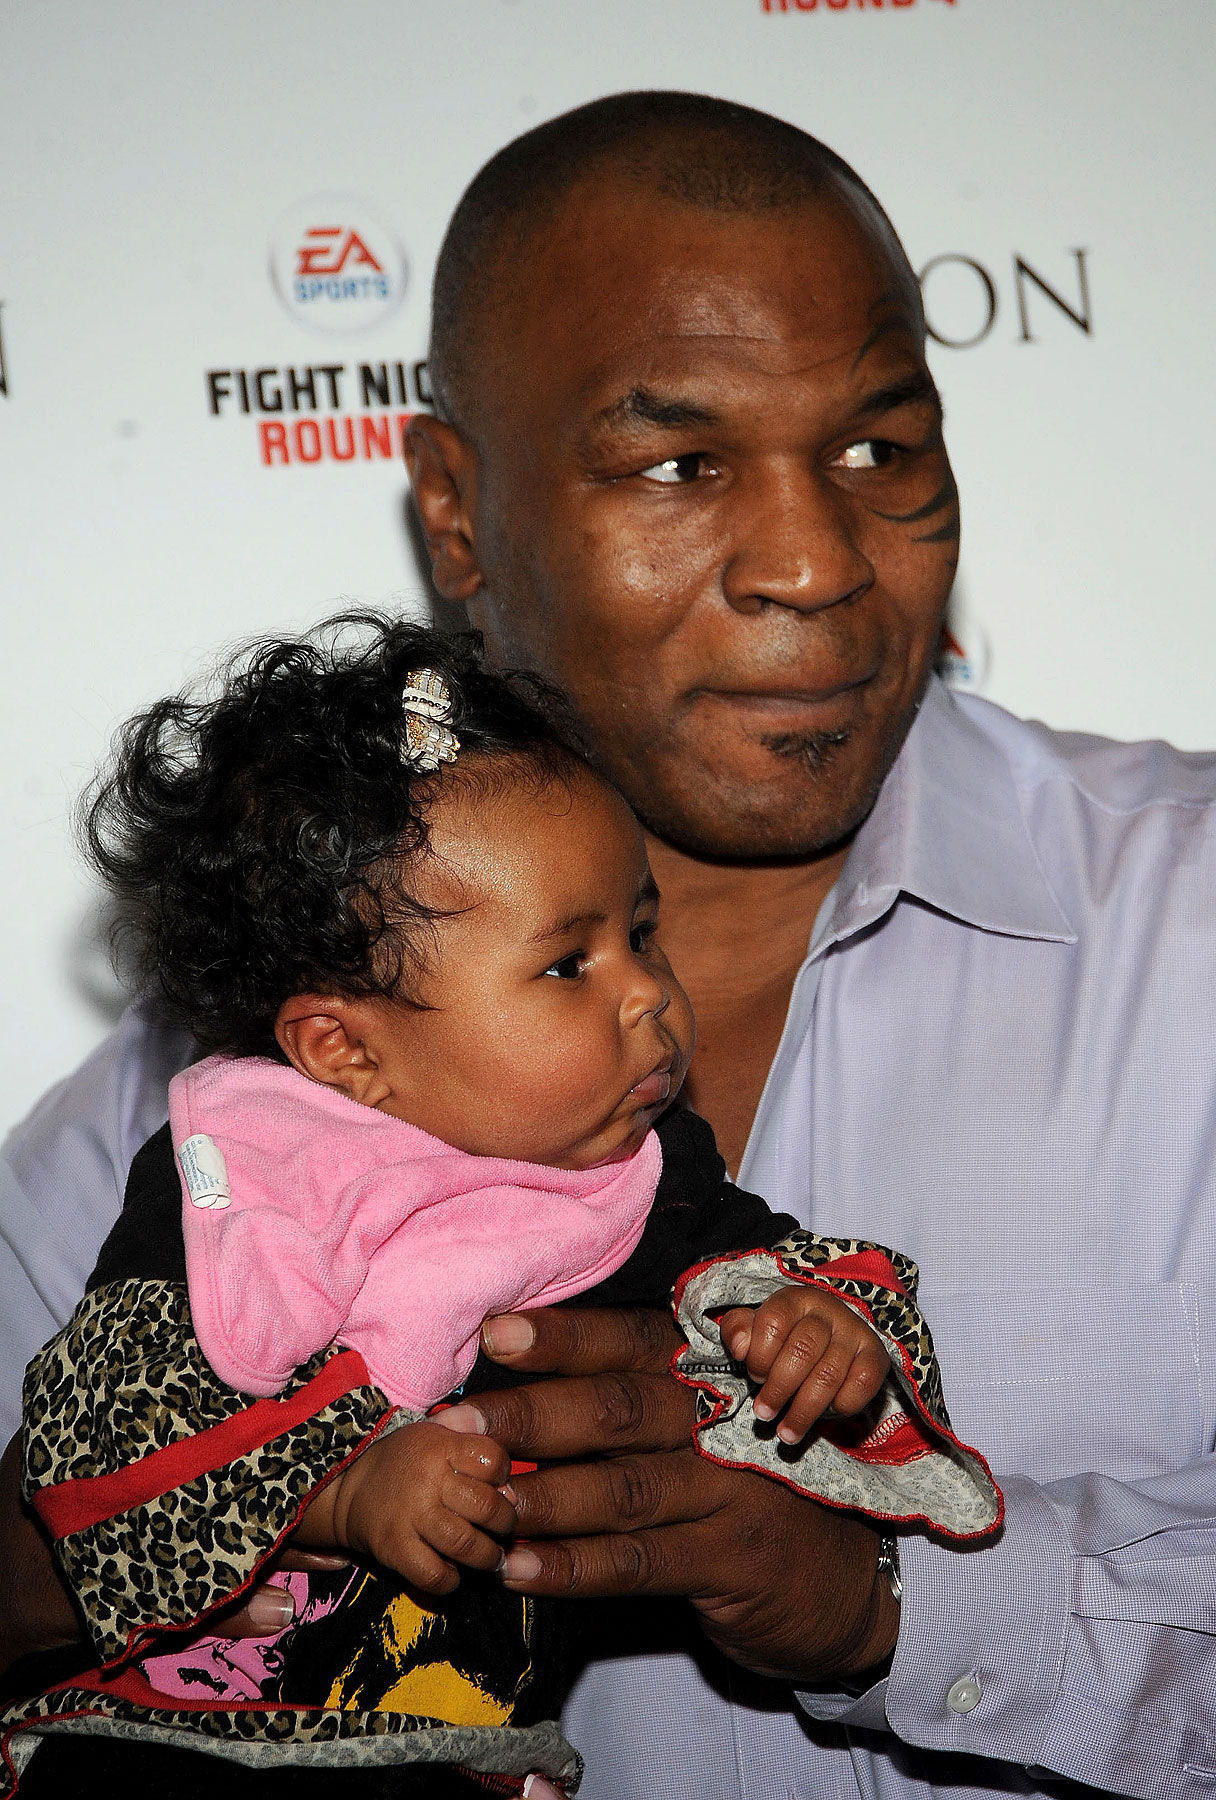 Mike Tyson's Daughter Has Passed Away